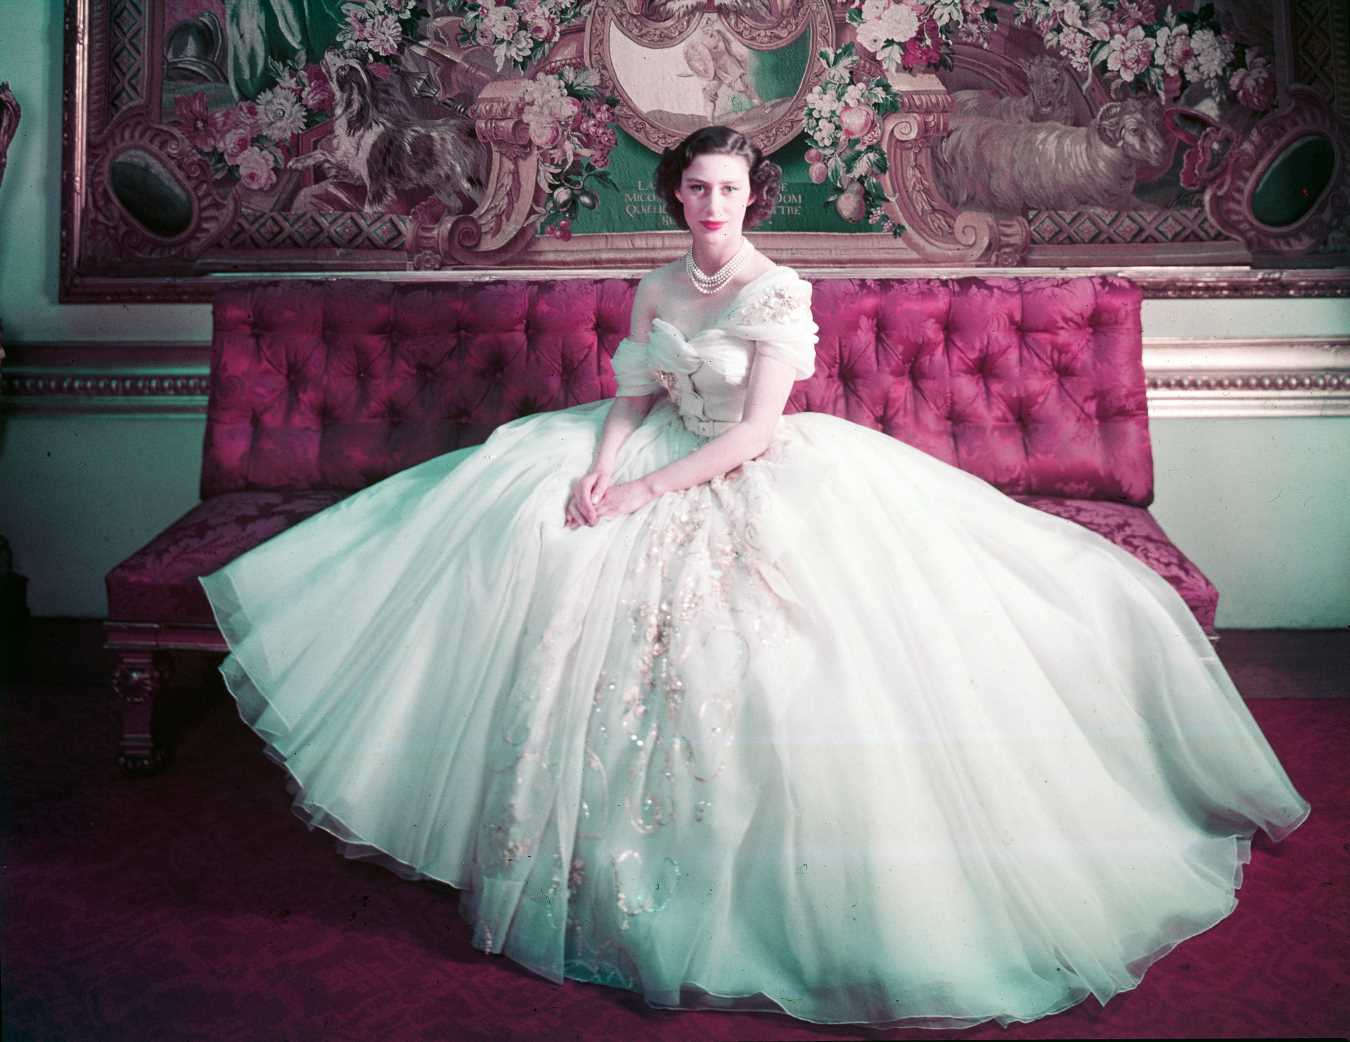 See Princess Margaret's Epic 21st Birthday Dress on the Anniversary of Her Birth